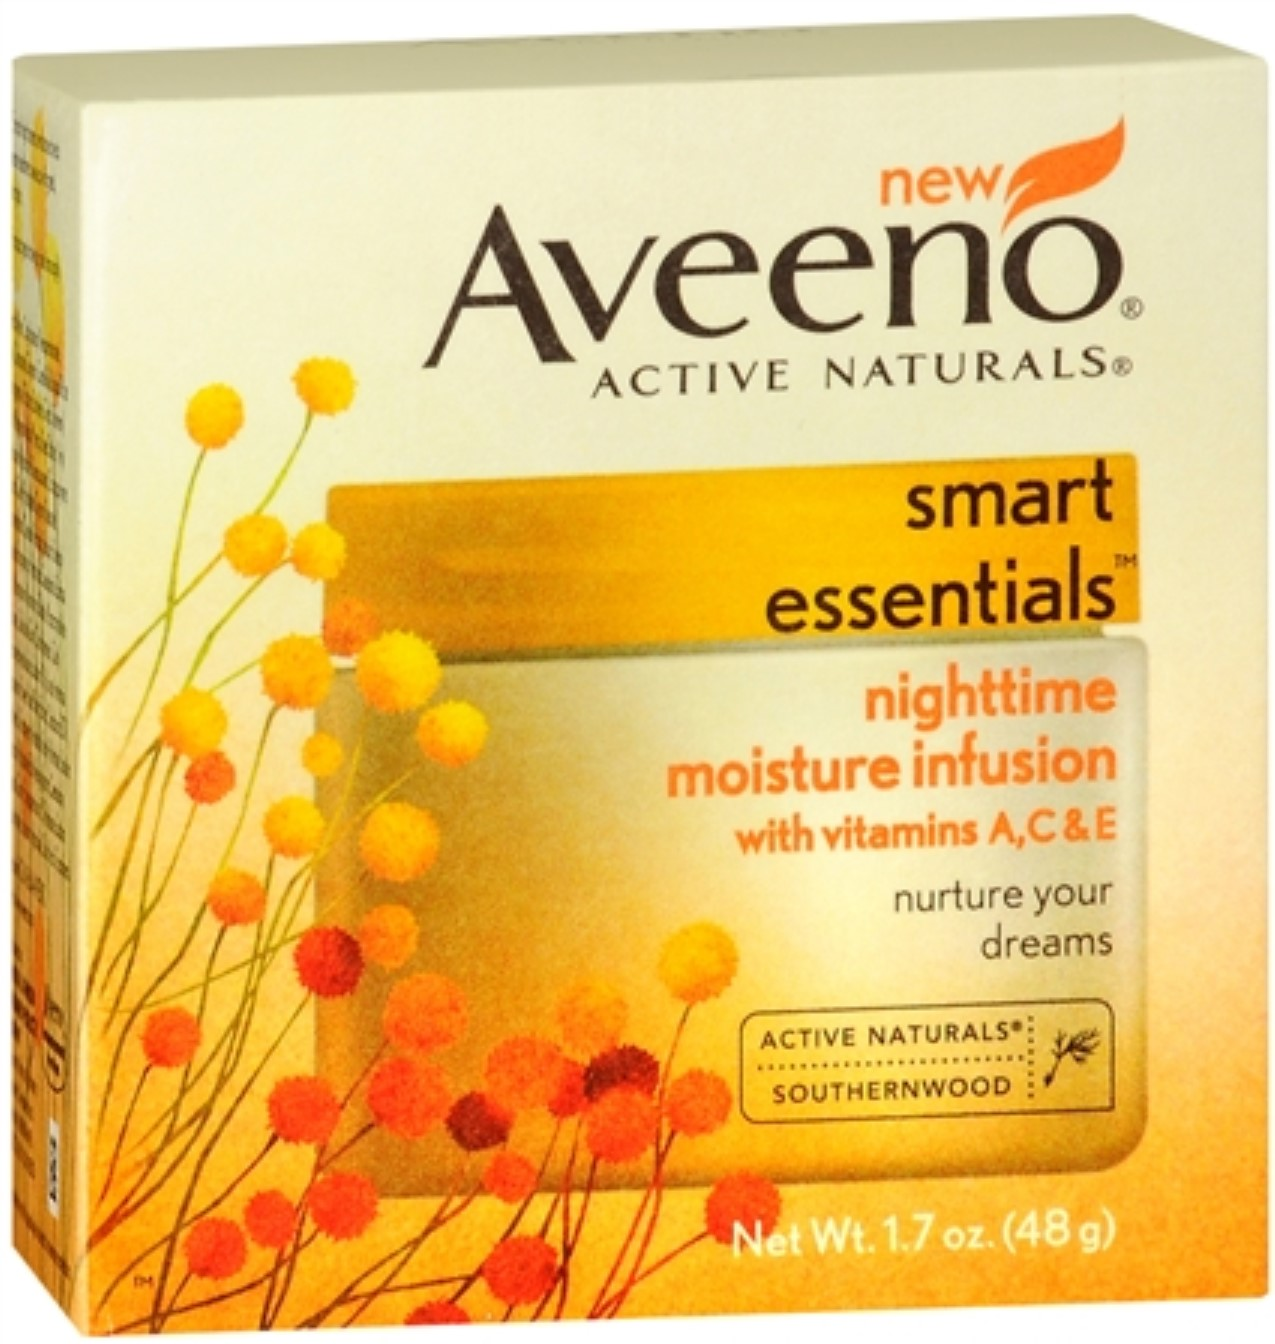 Aveeno Smart Essentials Nighttime Moisture Infusion, 1.7 oz